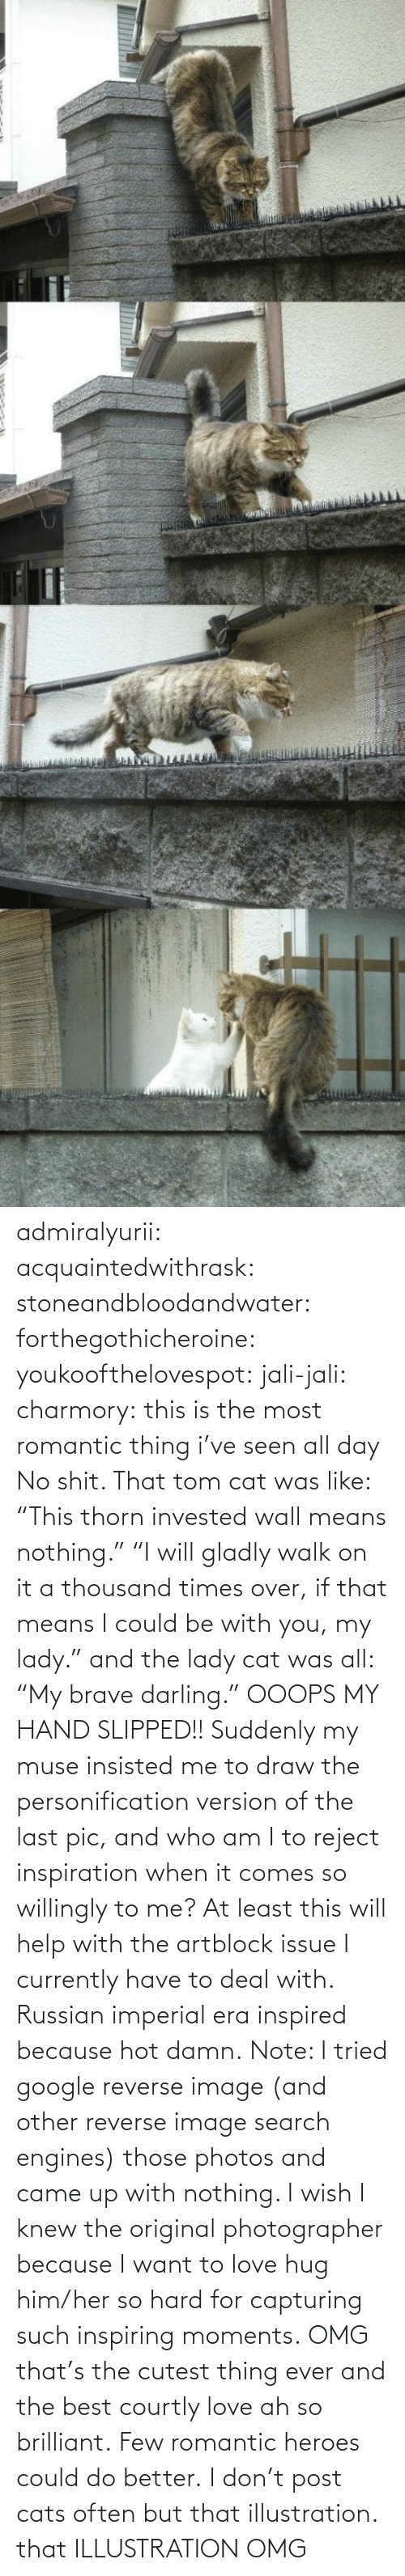 "her: admiralyurii: acquaintedwithrask:  stoneandbloodandwater:  forthegothicheroine:  youkoofthelovespot:  jali-jali:  charmory:  this is the most romantic thing i've seen all day  No shit. That tom cat was like: ""This thorn invested wall means nothing."" ""I will gladly walk on it a thousand times over, if that means I could be with you, my lady."" and the lady cat was all: ""My brave darling."" OOOPS MY HAND SLIPPED!!  Suddenly my muse insisted me to draw the personification version of the last pic, and who am I to reject inspiration when it comes so willingly to me? At least this will help with the artblock issue I currently have to deal with. Russian imperial era inspired because hot damn. Note: I tried google reverse image (and other reverse image search engines) those photos and came up with nothing. I wish I knew the original photographer because I want to love hug him/her so hard for capturing such inspiring moments.  OMG that's the cutest thing ever and the best courtly love ah so brilliant.  Few romantic heroes could do better.  I don't post cats often but that illustration.  that ILLUSTRATION    OMG"